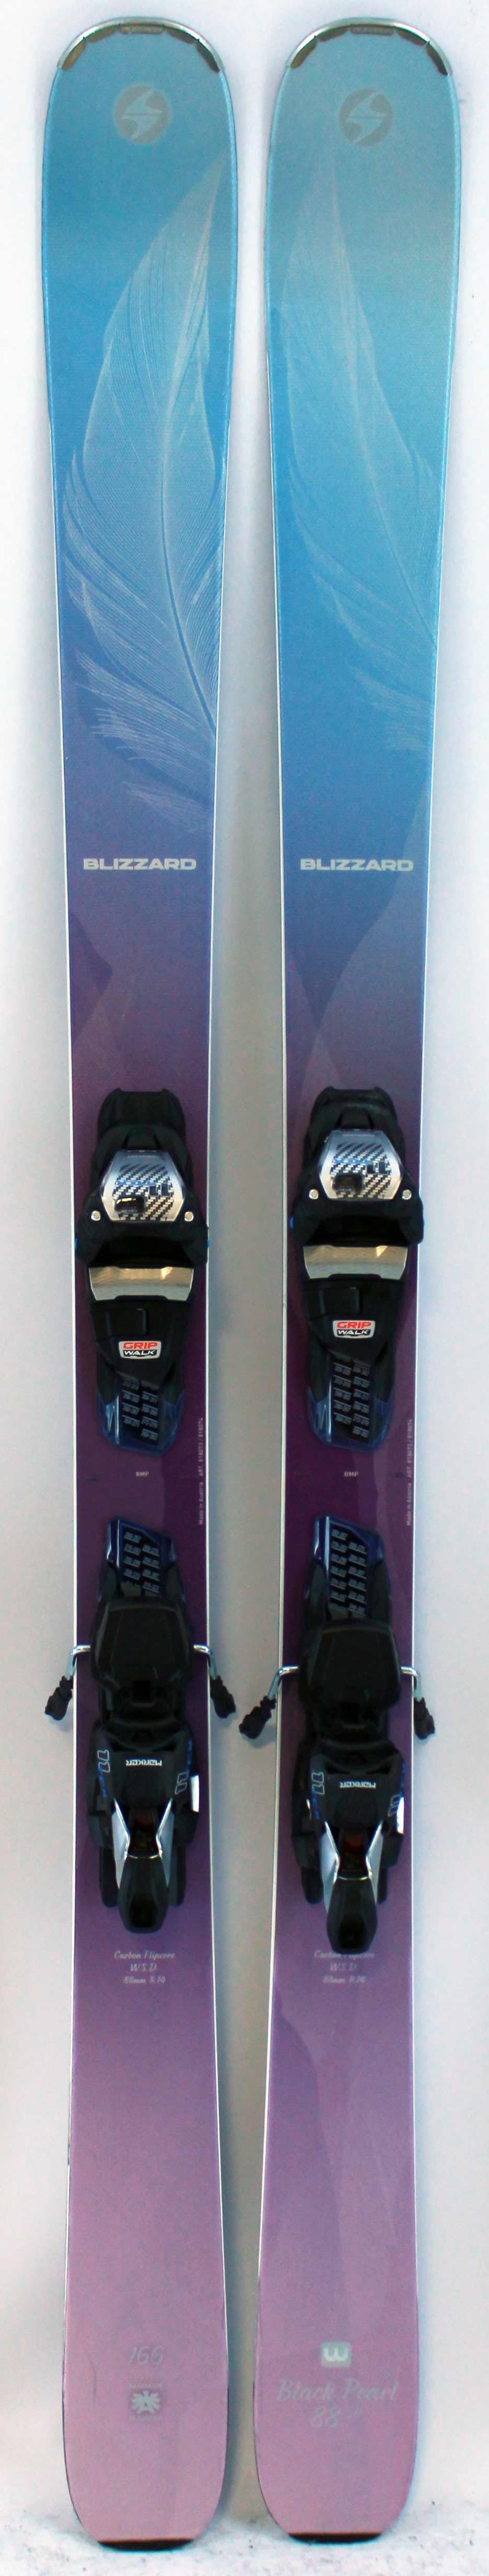 2018 Blizzard Black Pearl 88 166cm Used Demo Skis on Sale  086c9d0b1